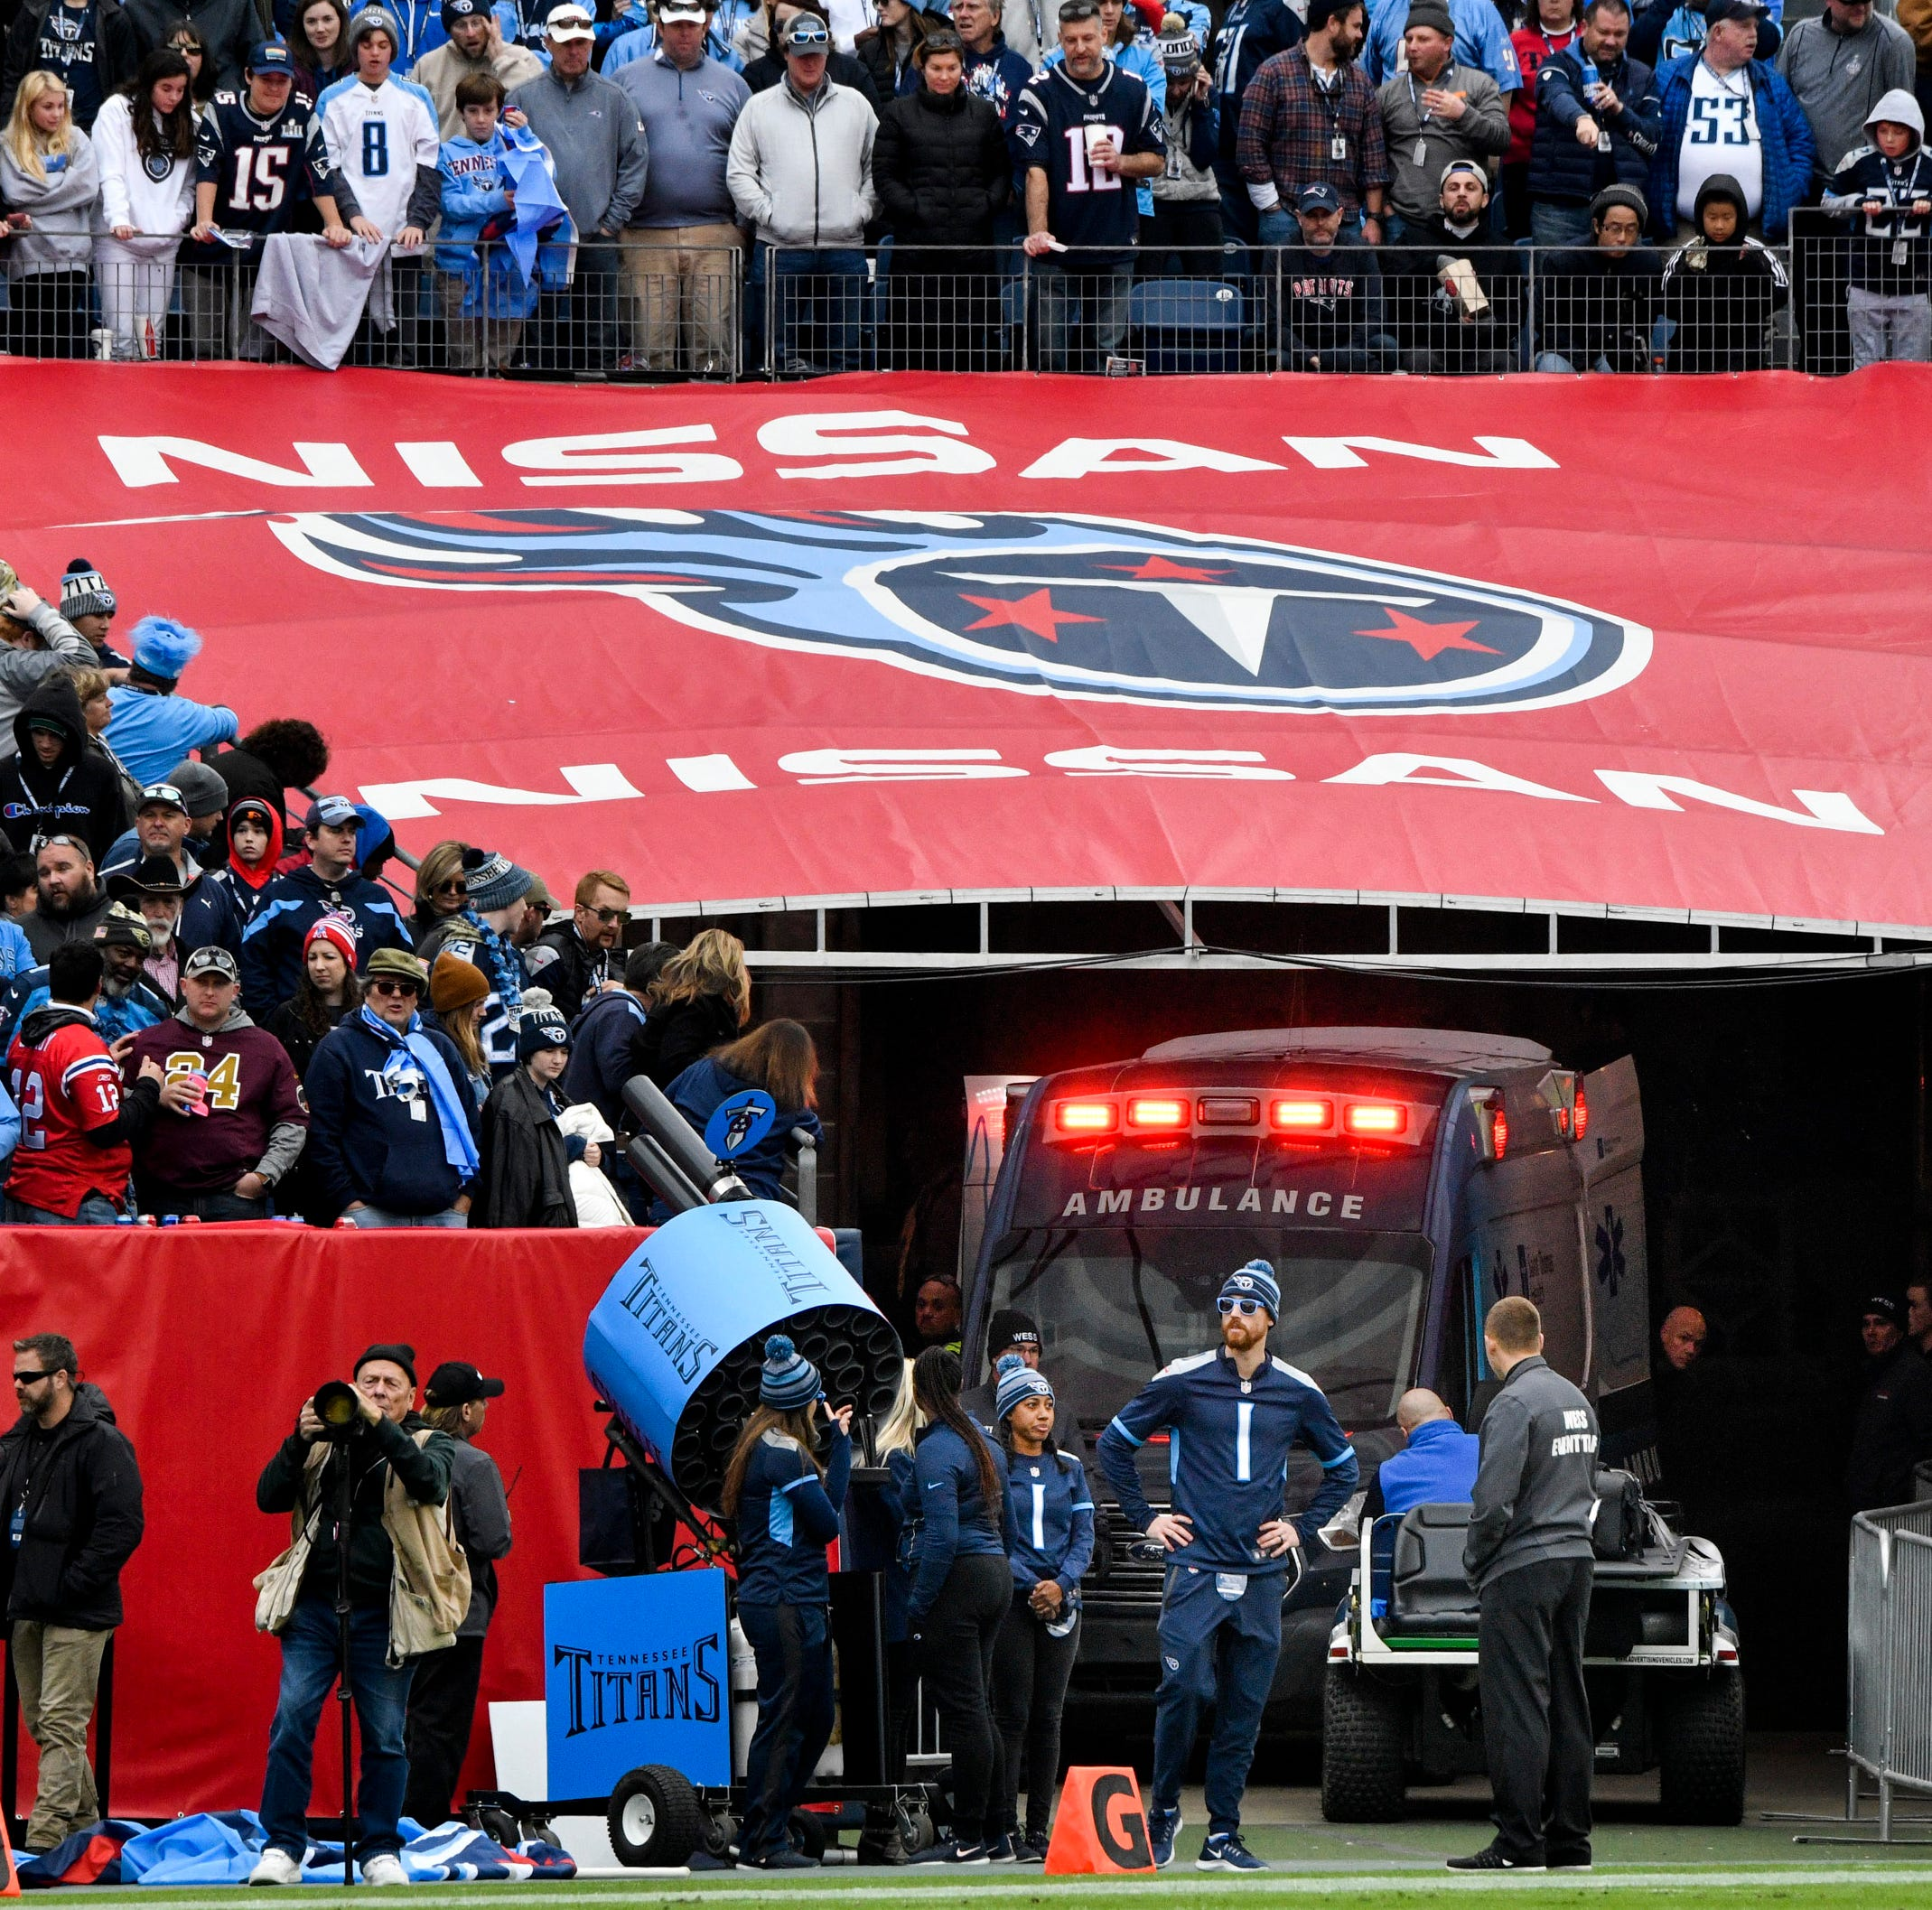 Fan in critical condition after fall from Nissan Stadium stands